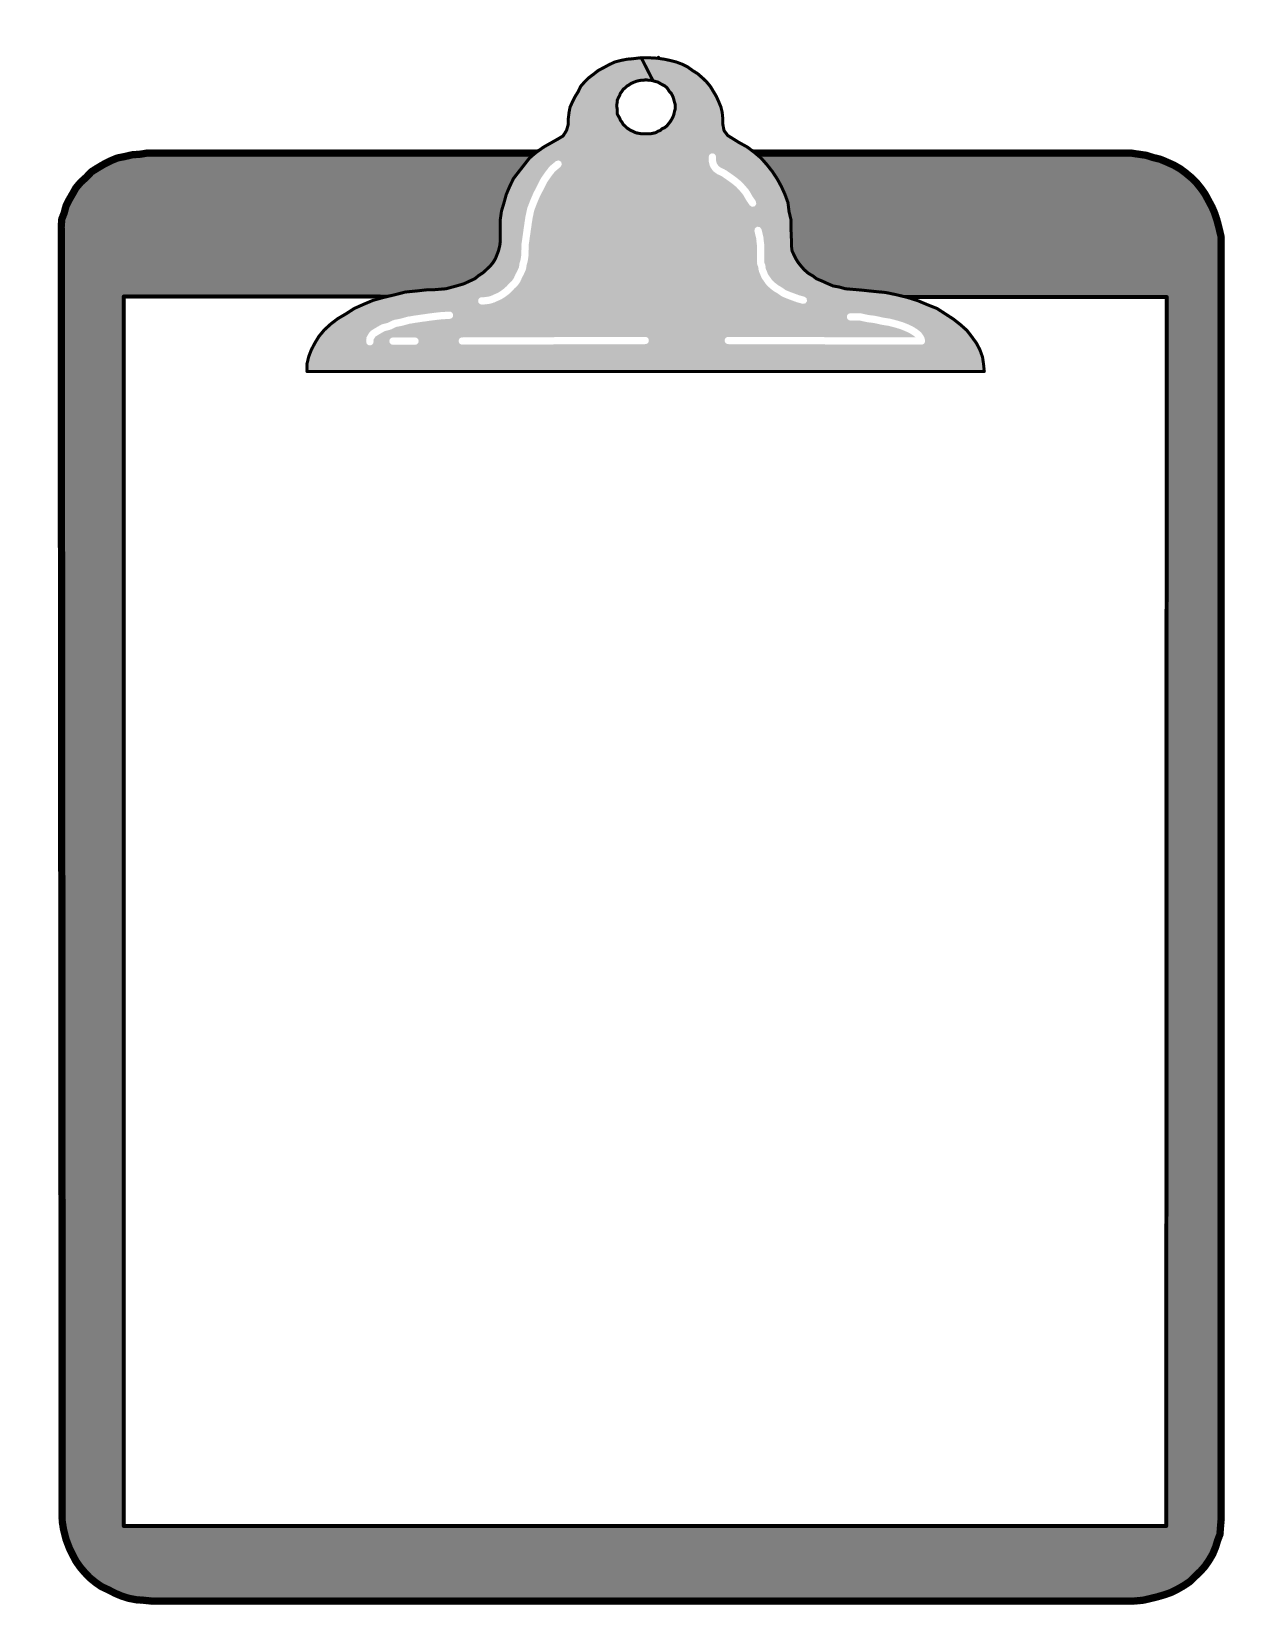 Clipboard clipart png clip black and white stock Free Clipboard Clipart Png, Download Free Clip Art, Free Clip Art on ... clip black and white stock